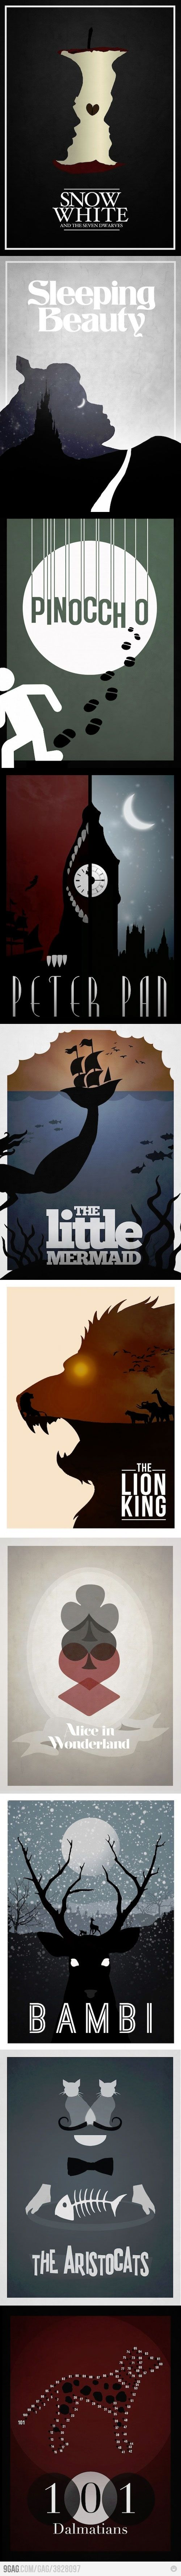 Minimalist Disney Film Posters - These are incredible.